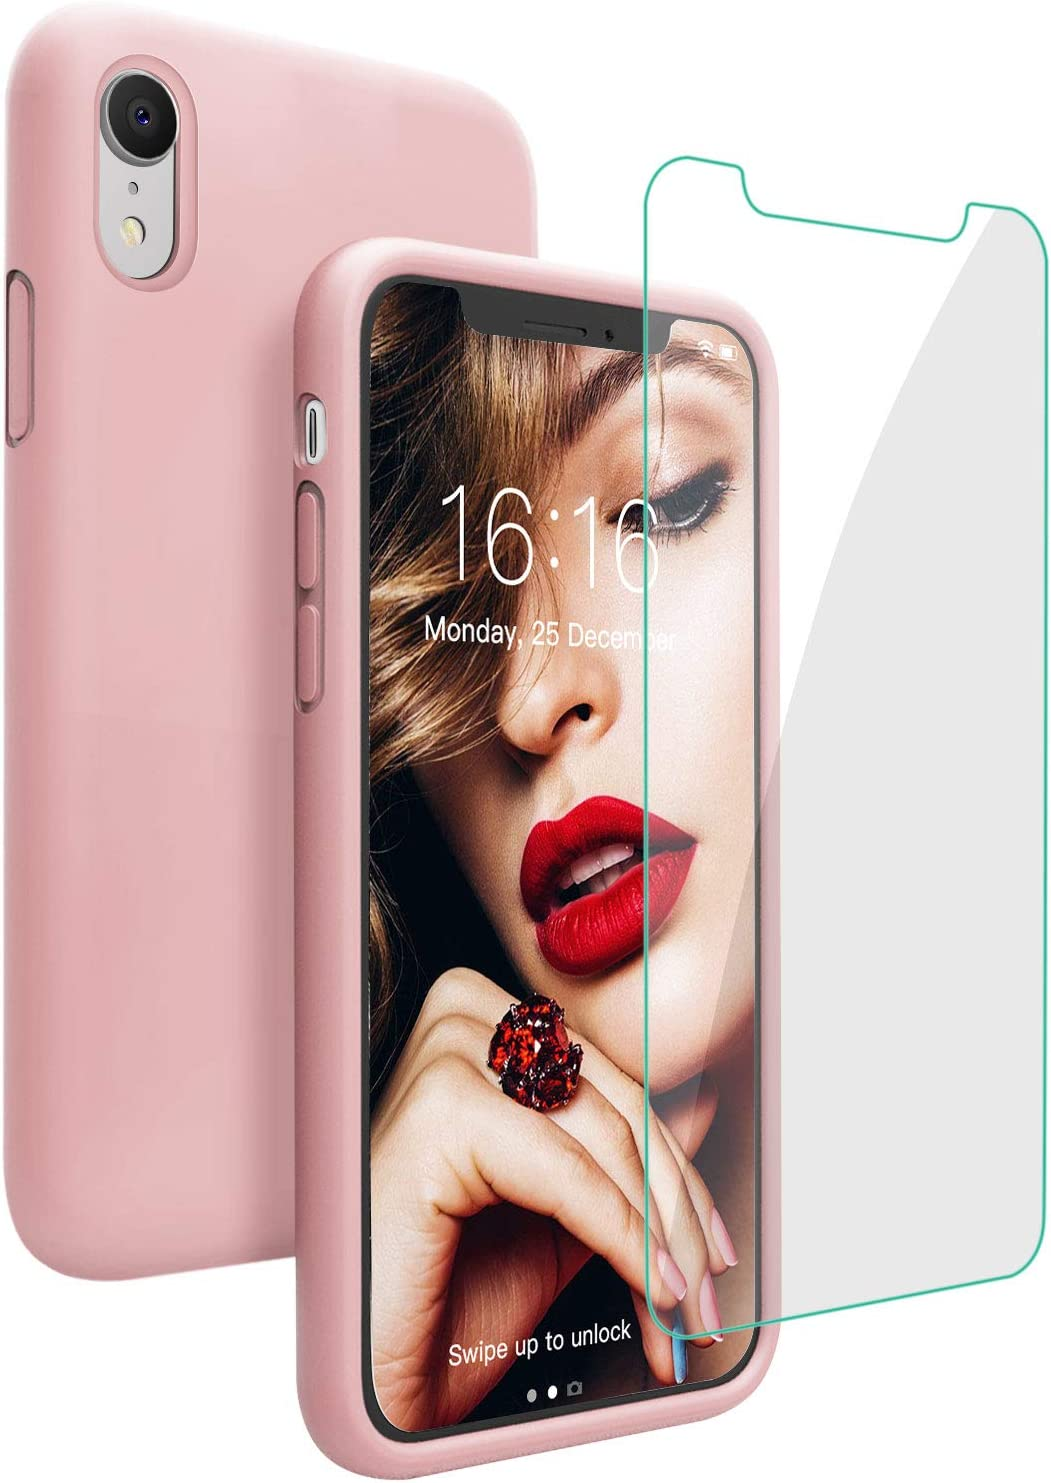 JASBON Case for iPhone XR, Soft Liquid Silicone iPhone XR Case with Tempered Glass Cover for iPhone XR-Pink Sand